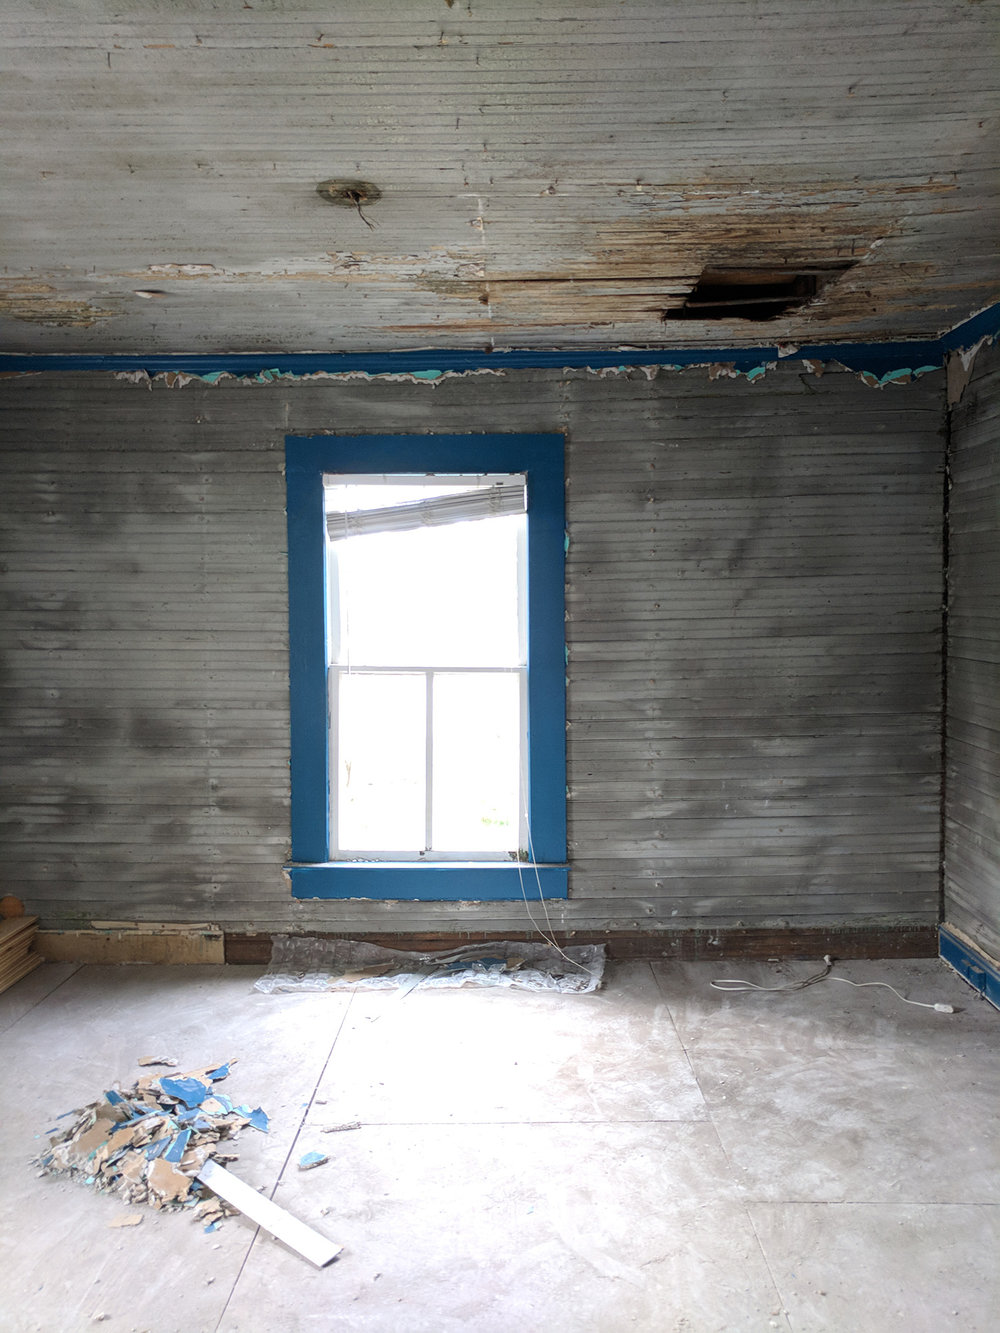 The Robert Lee Robinson House Guest Bedroom: Demolition & Revelation